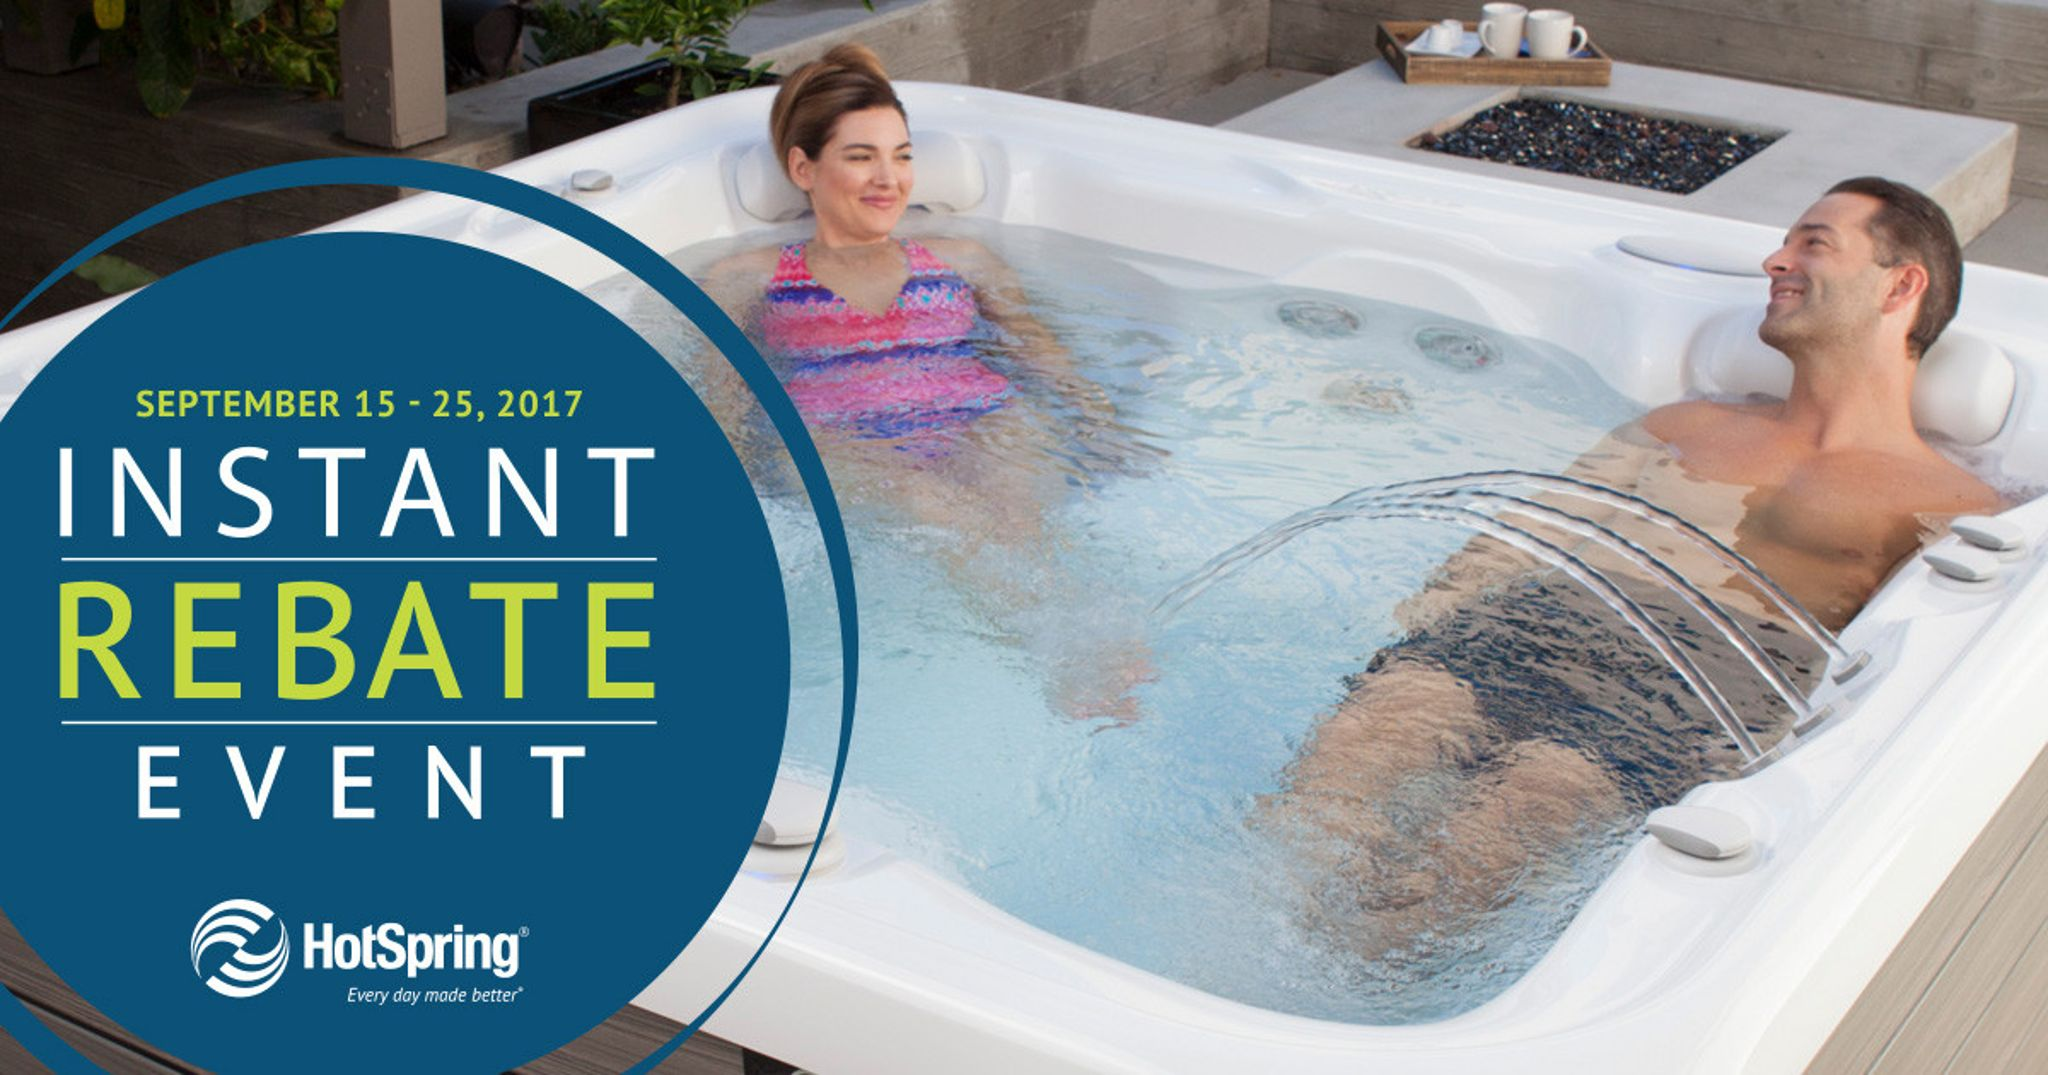 Hot Spring Instant Rebate Event